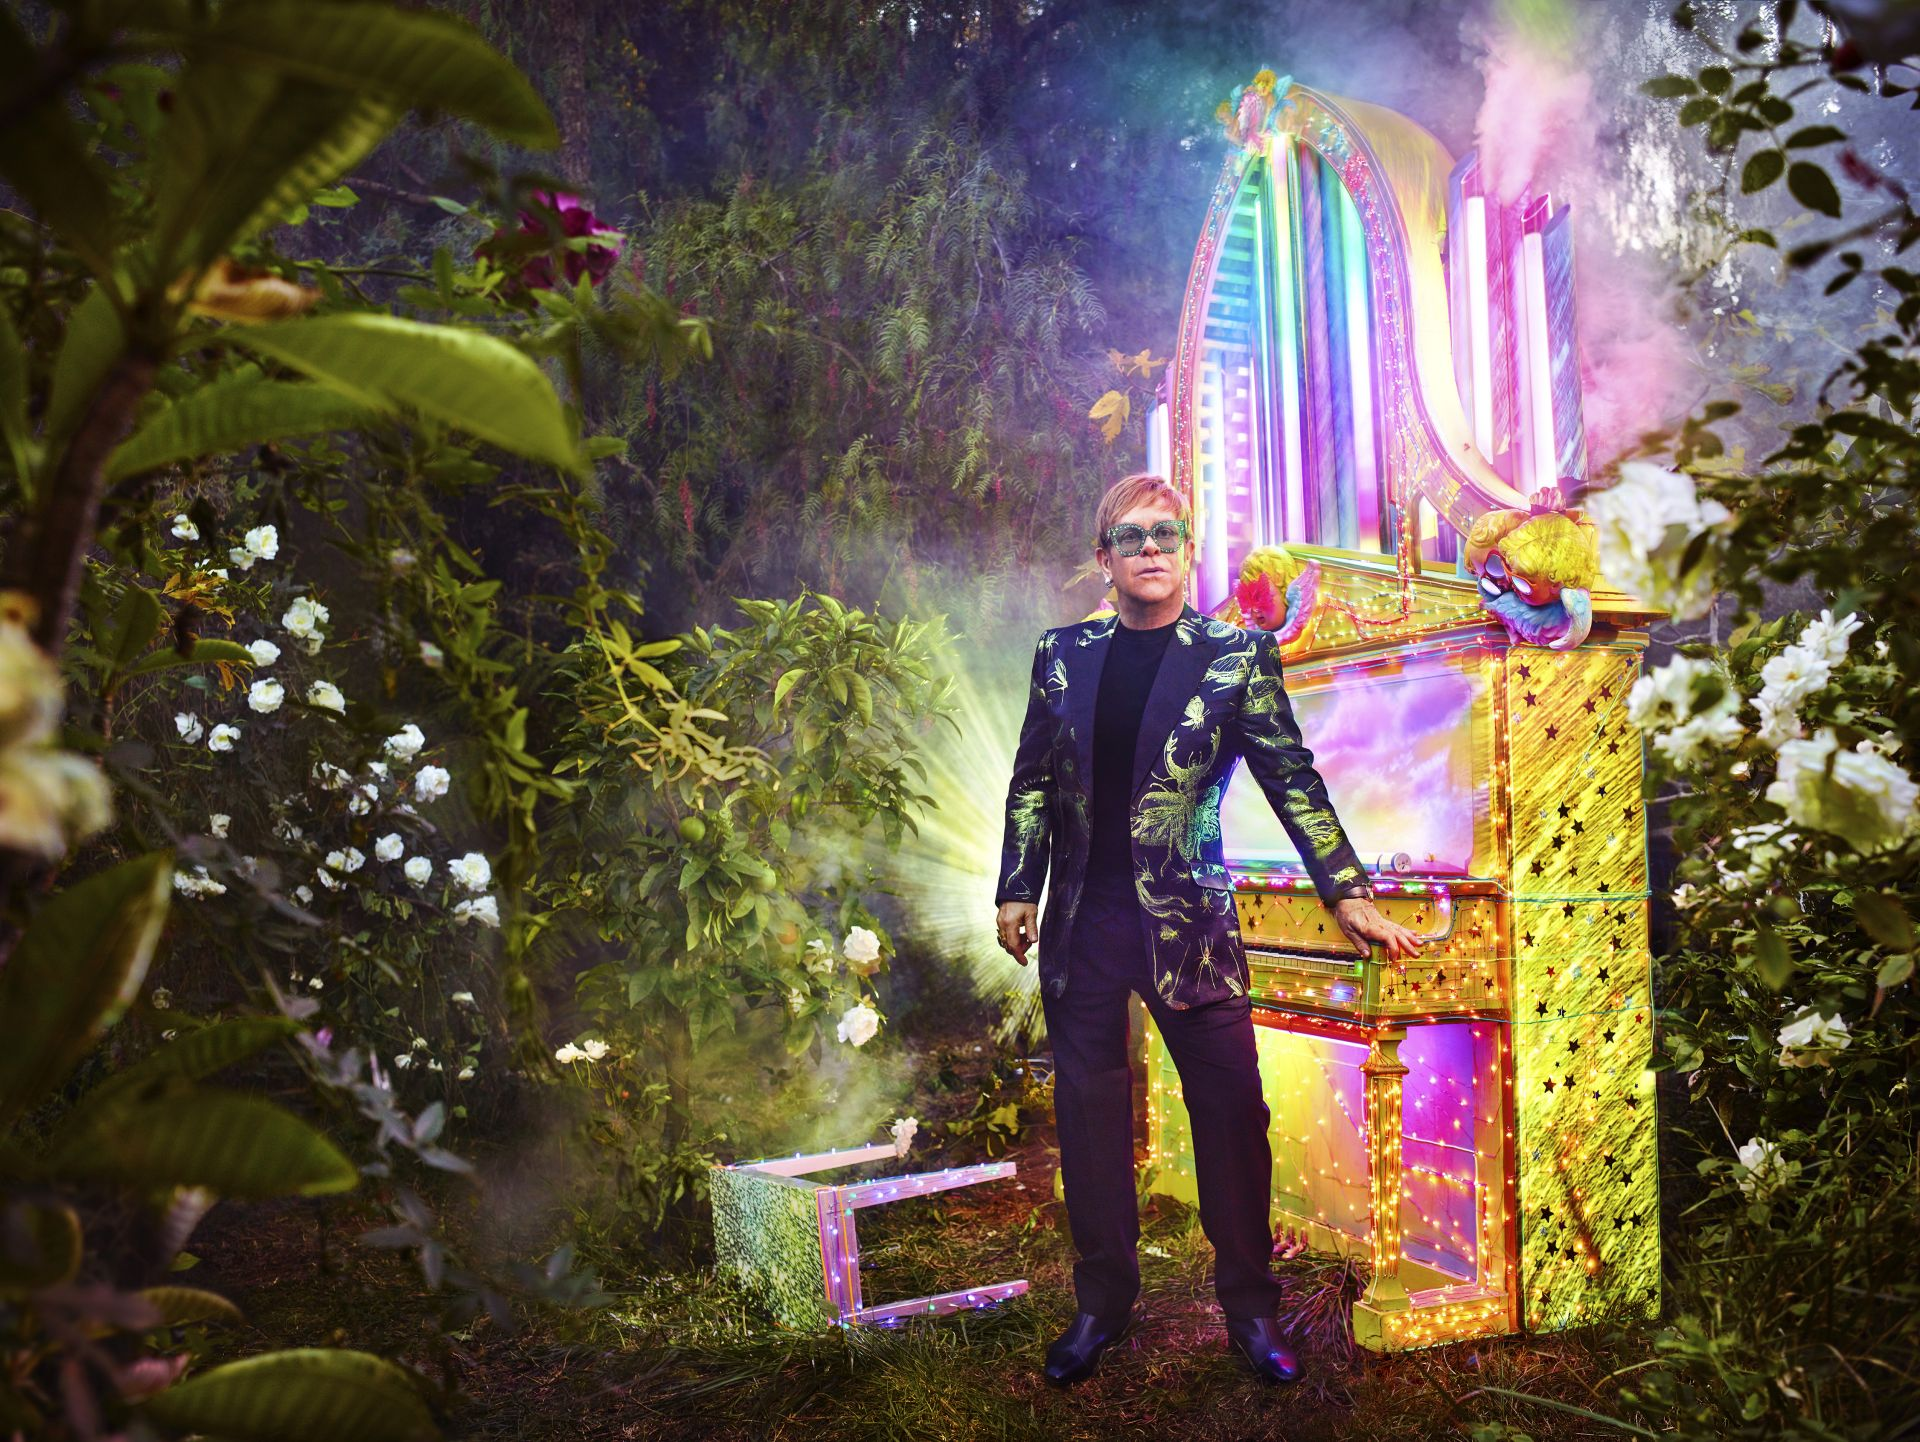 These dates mark Elton's last-ever tour, the end of half a century on the road for one of pop culture's most enduring performers. The new stage production will take his fans on a musical and highly visual journey spanning a 50-year career of hits like no one has ever seen before.